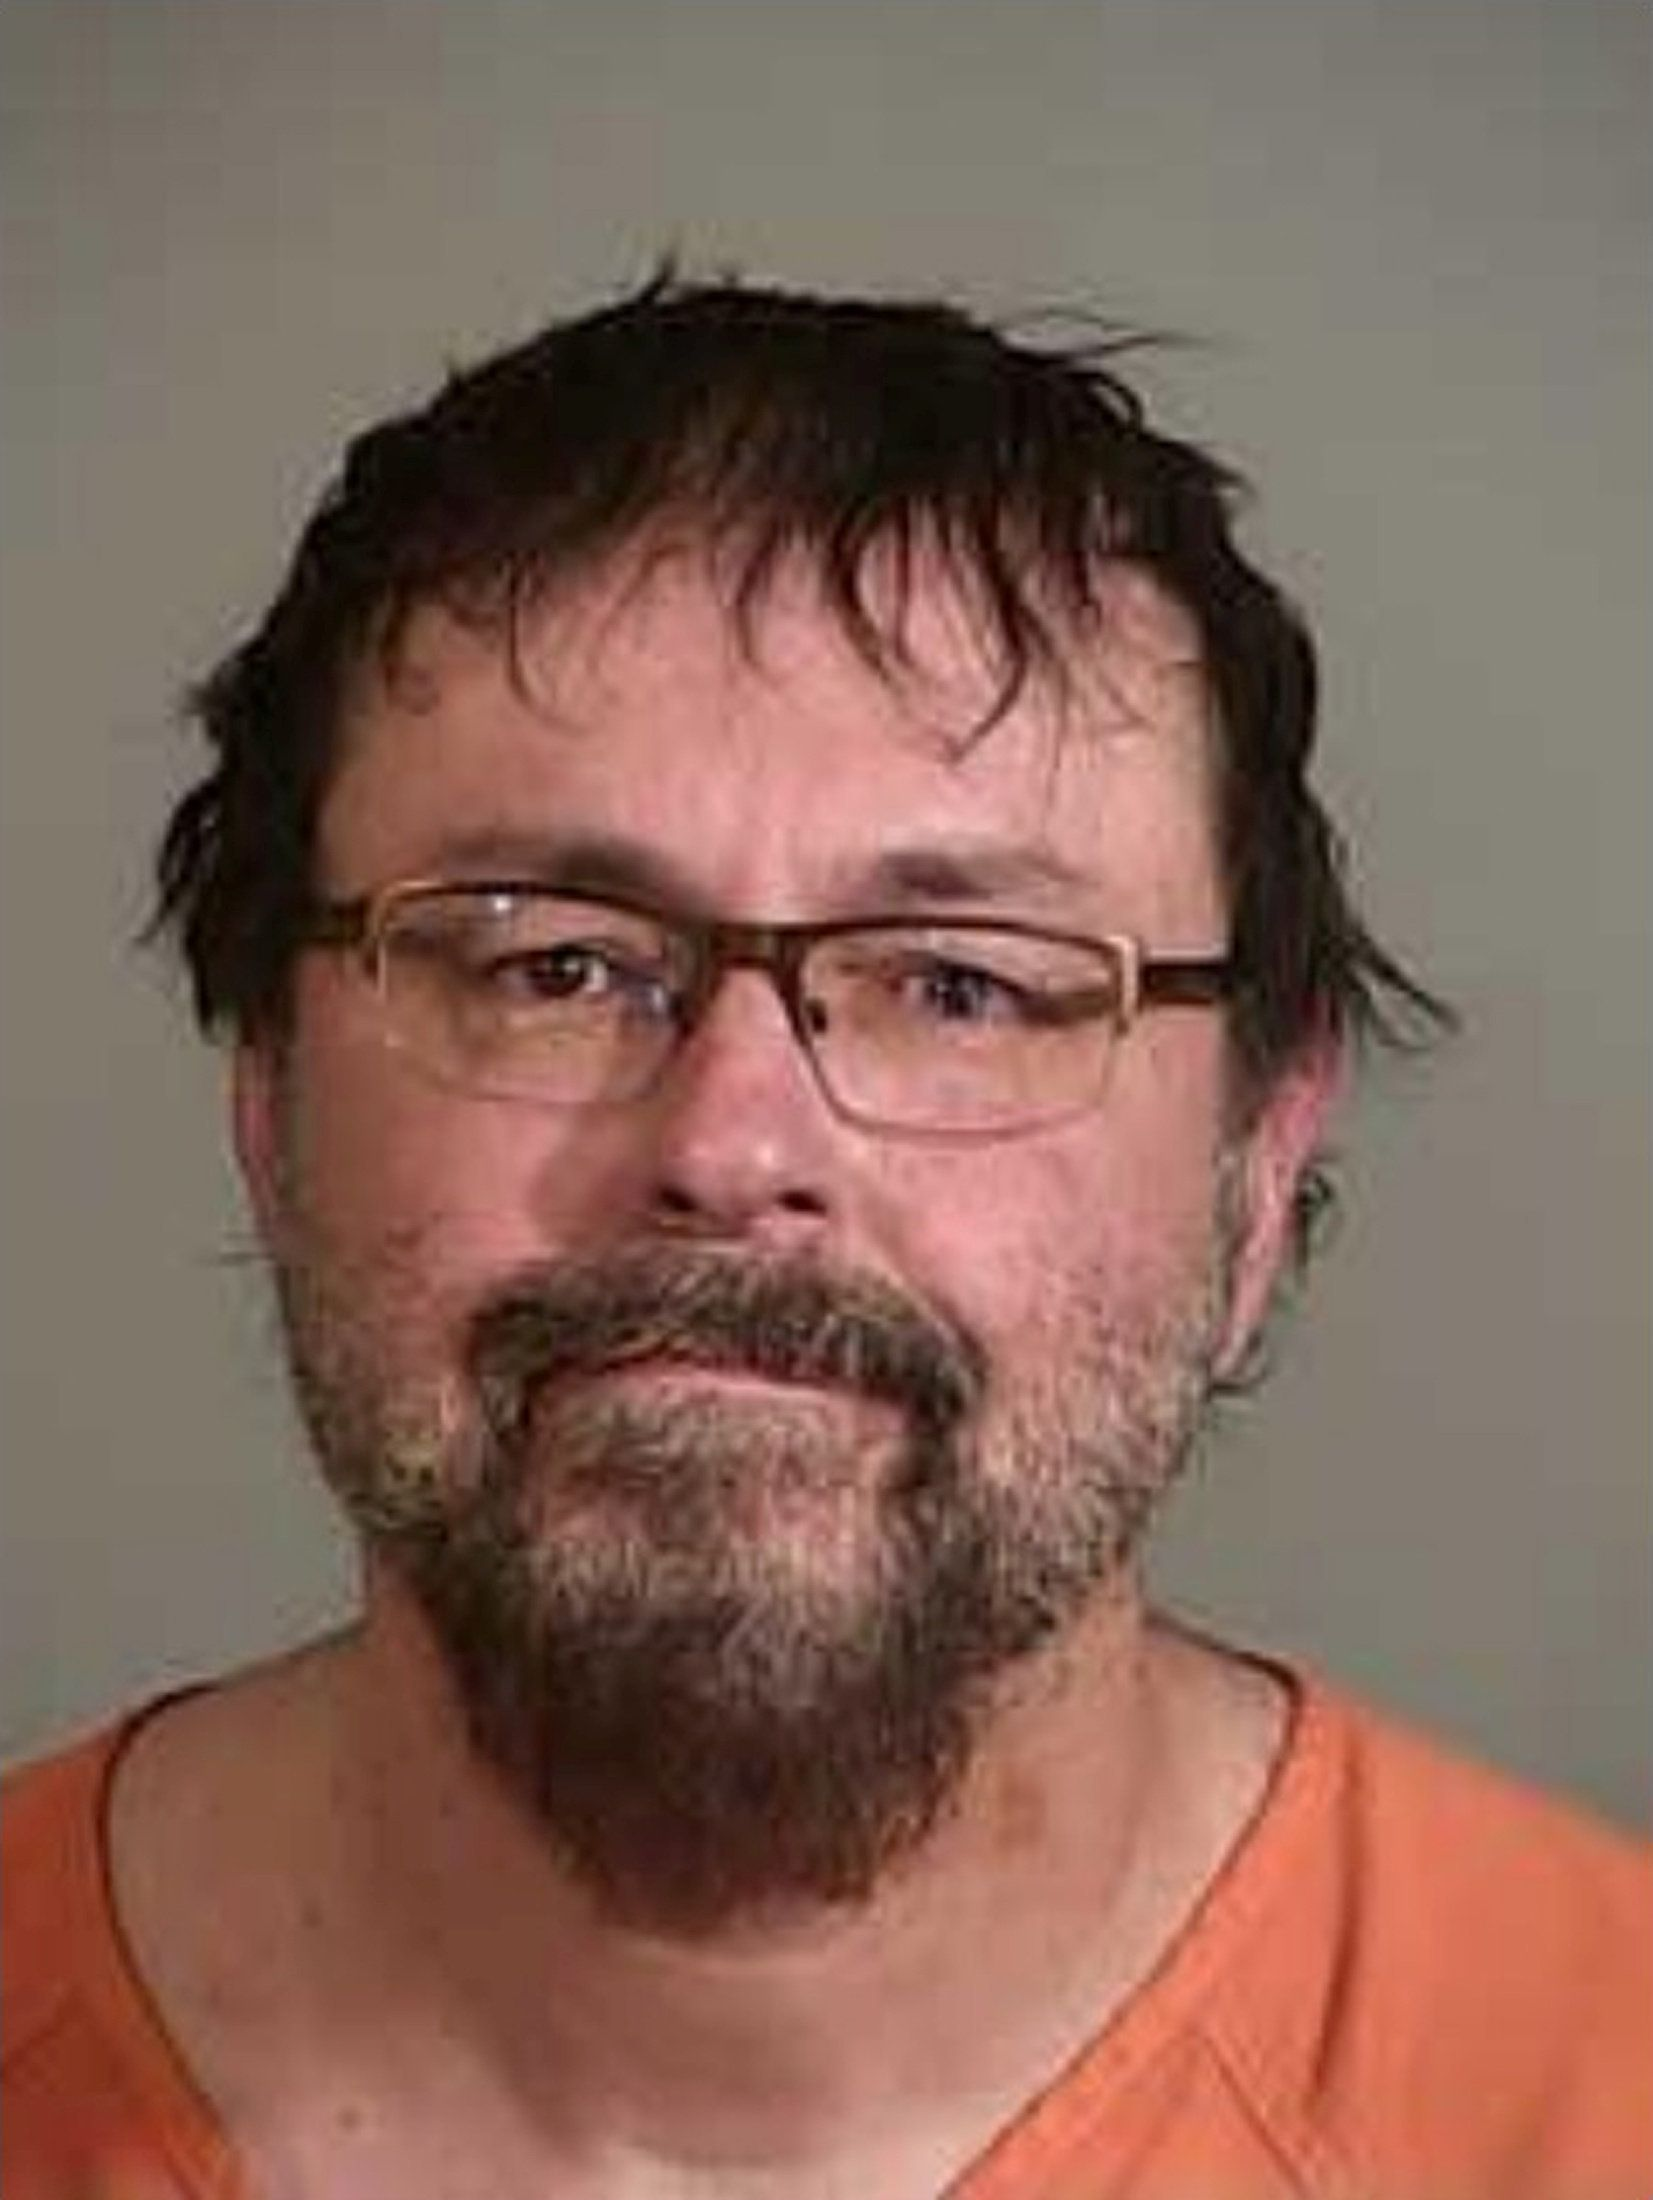 Tad Cummins, 50, a former Tennessee high school teacher accused of abducting a 15-year-old student in March, seen in this booking photo after his arrest by Siskiyou County Sheriff's Department's Special Response Team (SRT) in Cecilville area of Siskiyou County, California, U.S. on April 20, 2017.    Courtesy SCSO/Handout via REUTERS    ATTENTION EDITORS - THIS IMAGE WAS PROVIDED BY A THIRD PARTY. EDITORIAL USE ONLY.    TPX IMAGES OF THE DAY